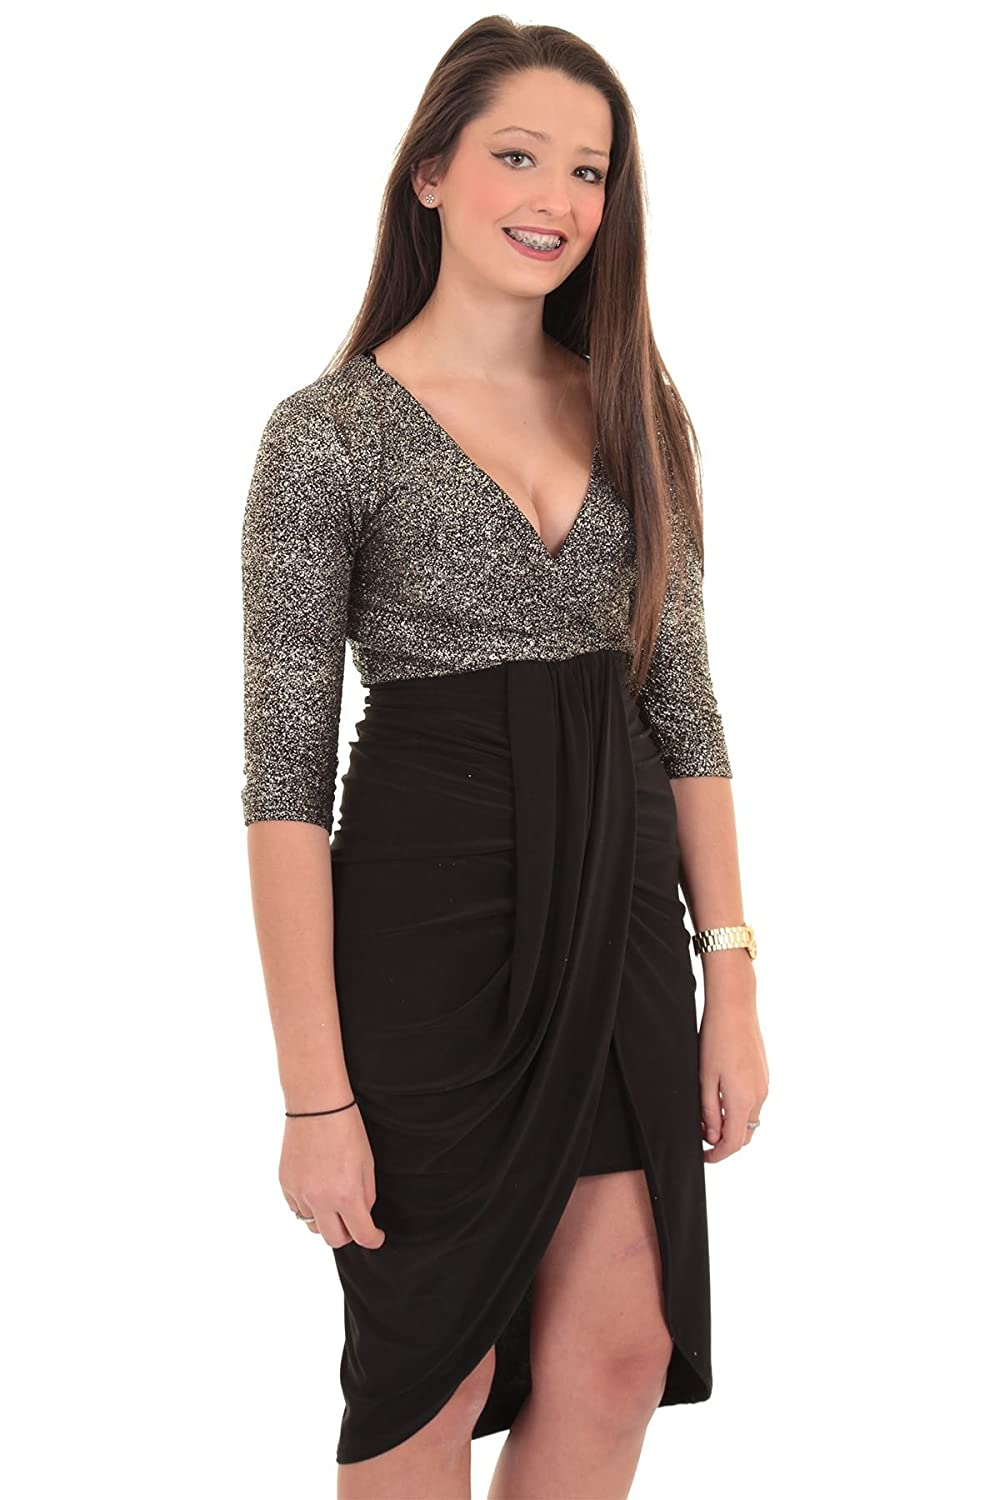 b7a09bc37a FANTASIA BOUTIQUE ® Ladies 3 4 Sleeve Plunge V Wrap Front Gathered Silver  Gold Contrast Smart Dress  Amazon.co.uk  Clothing